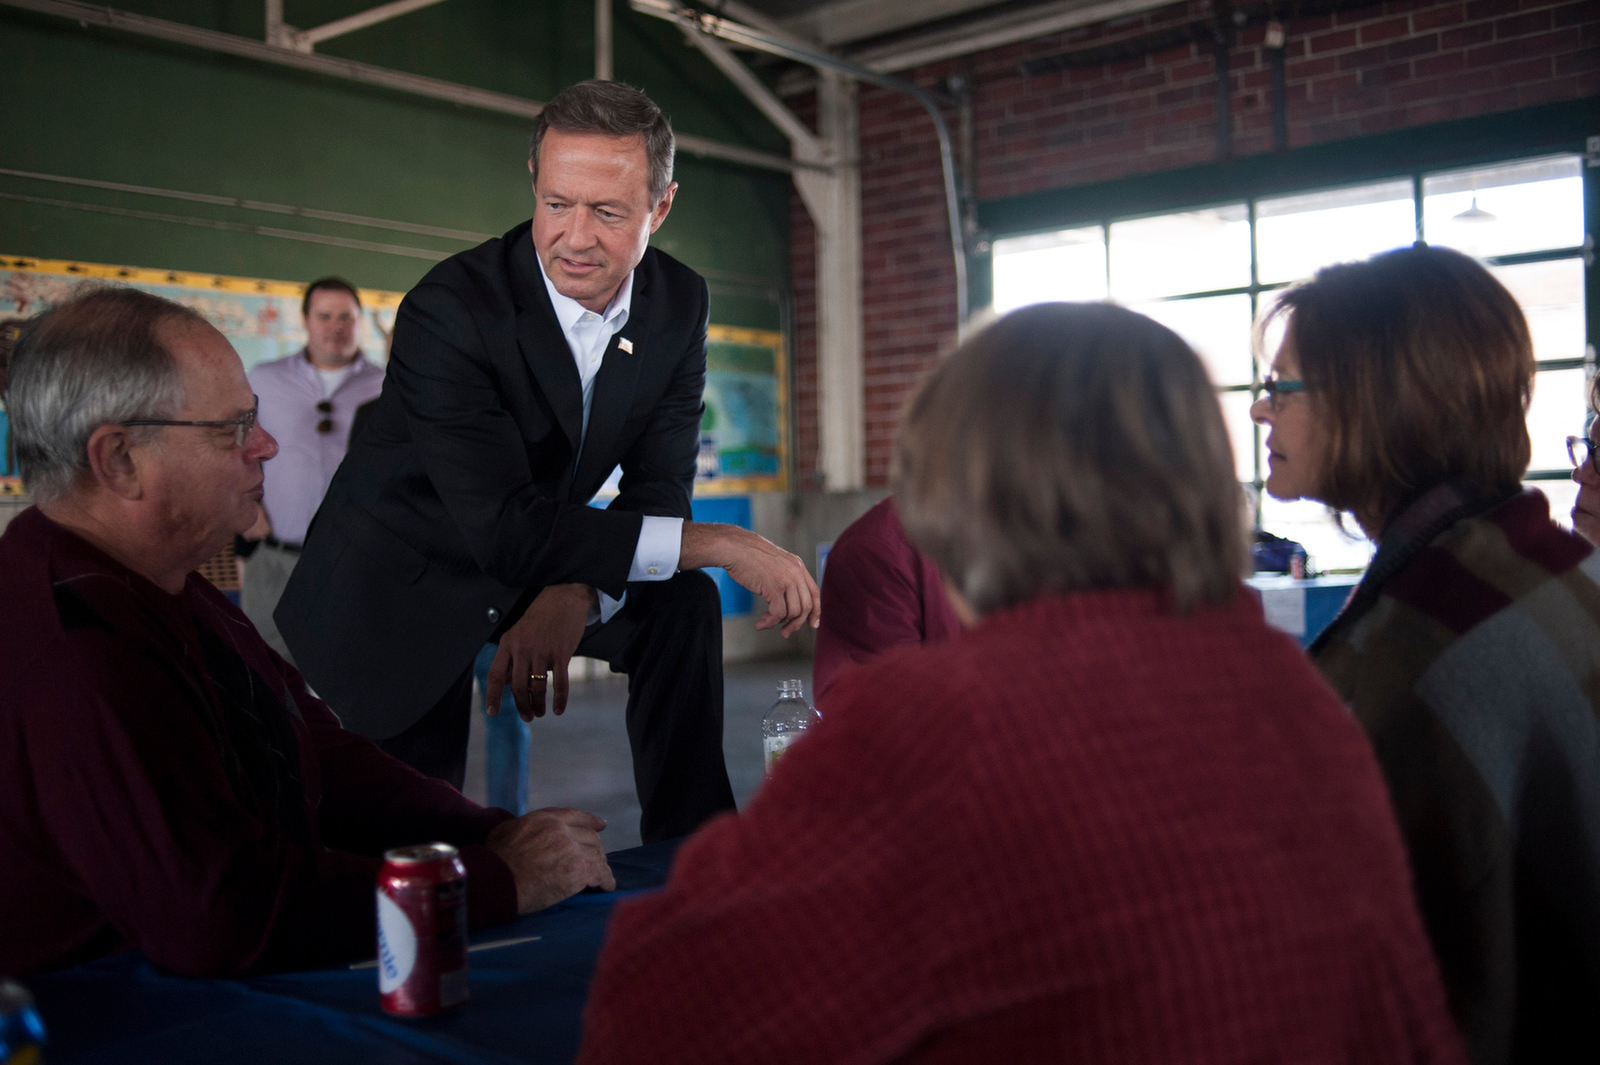 U.S. Democratic presidential candidate Maryland Governor Martin O'Malley makes campaign stops in Burlington, IA.